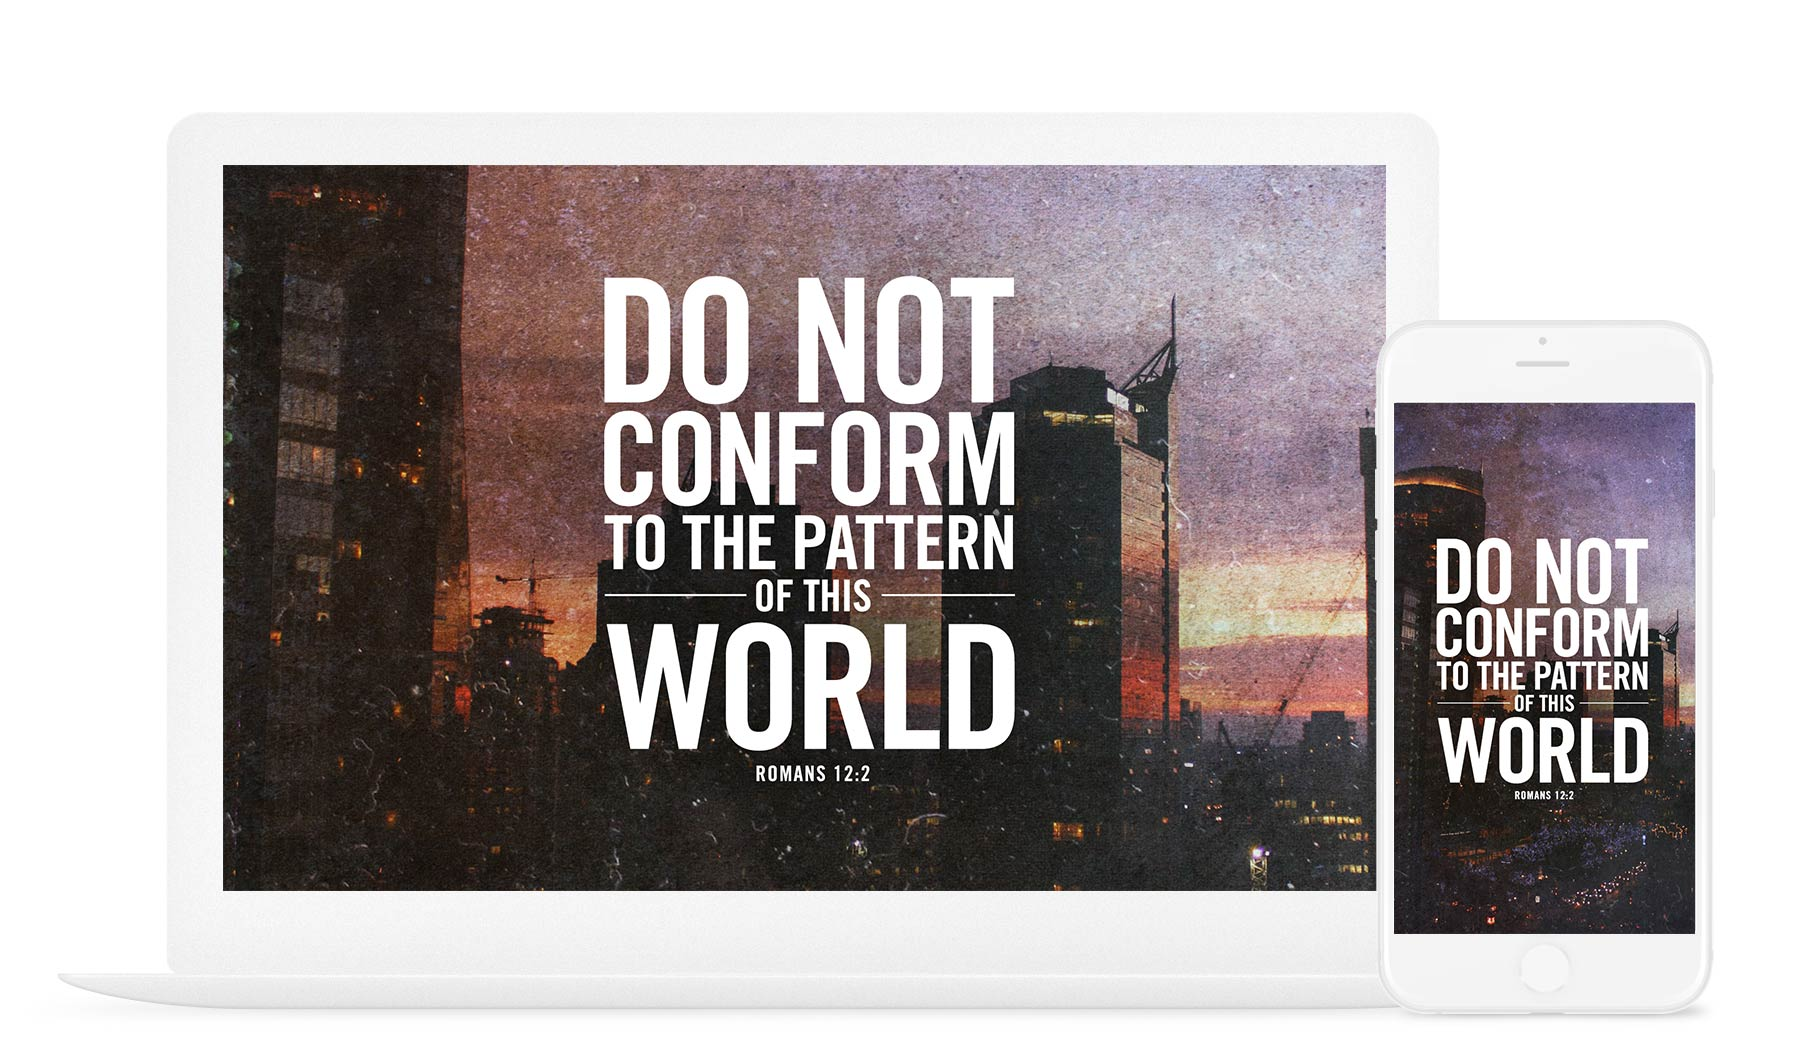 Do Not Conform To The Pattern Of This World New Inspiration Design